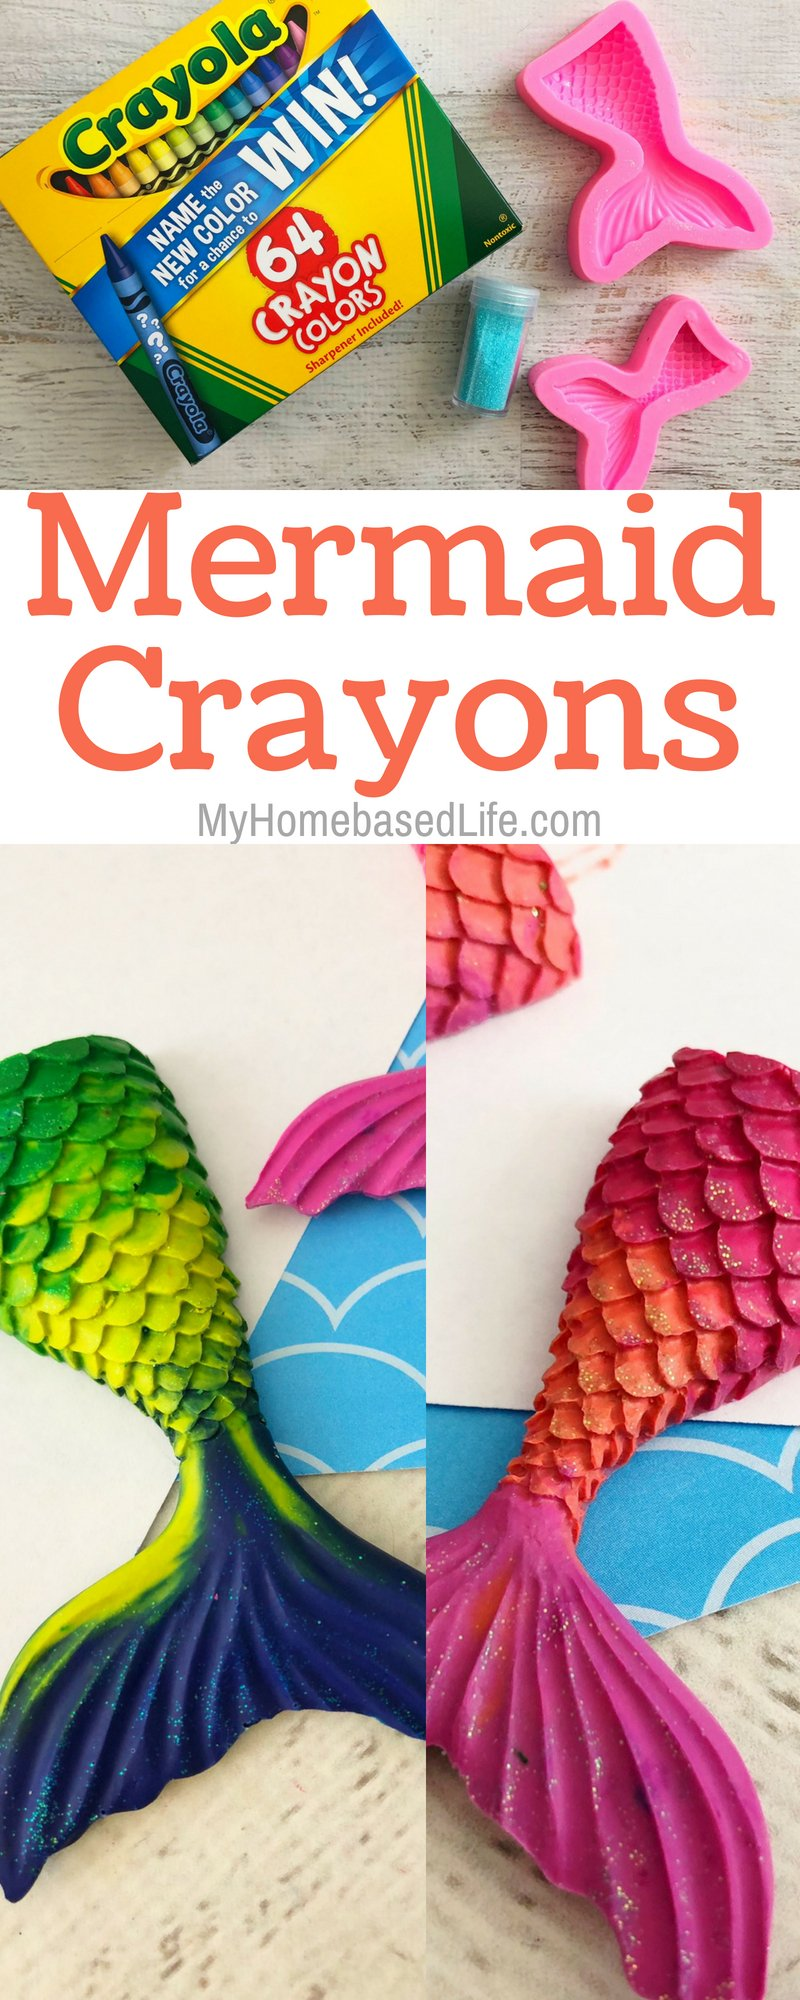 A great way to use up broken crayon pieces. Make Mermaid Crayons! If you're having a mermaid themed party, then you need to make these! #mermaid #crayons #upcycle #reuse #diy #forkids | Kids Craft | Easy Kids Activity | Upcycle | Reuse | Crayon Activity | Mermaid Activity for Kids |